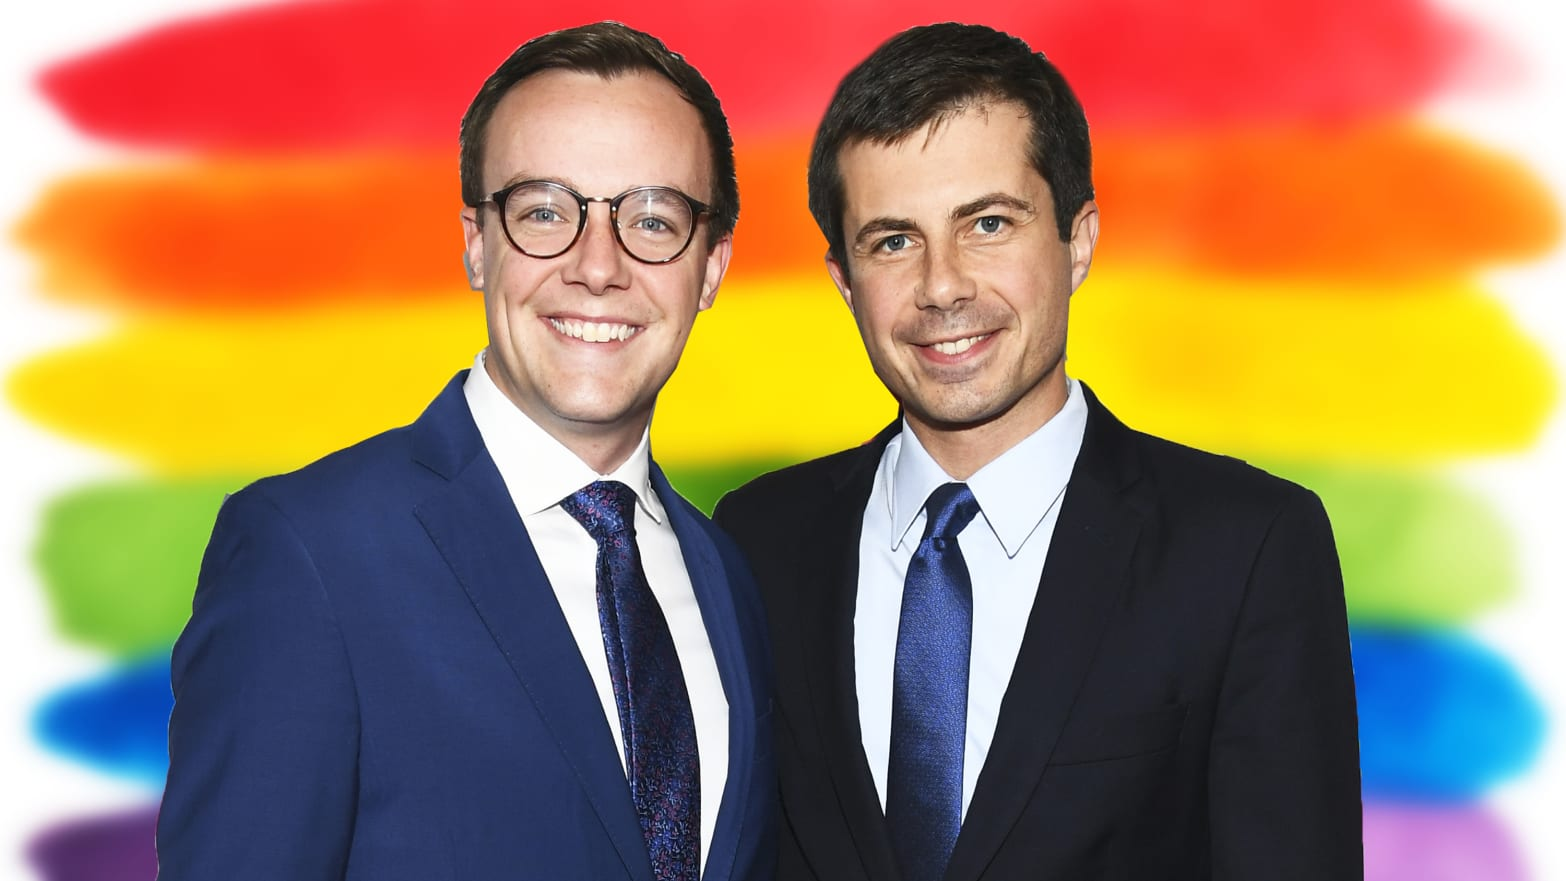 Image result for mayor pete